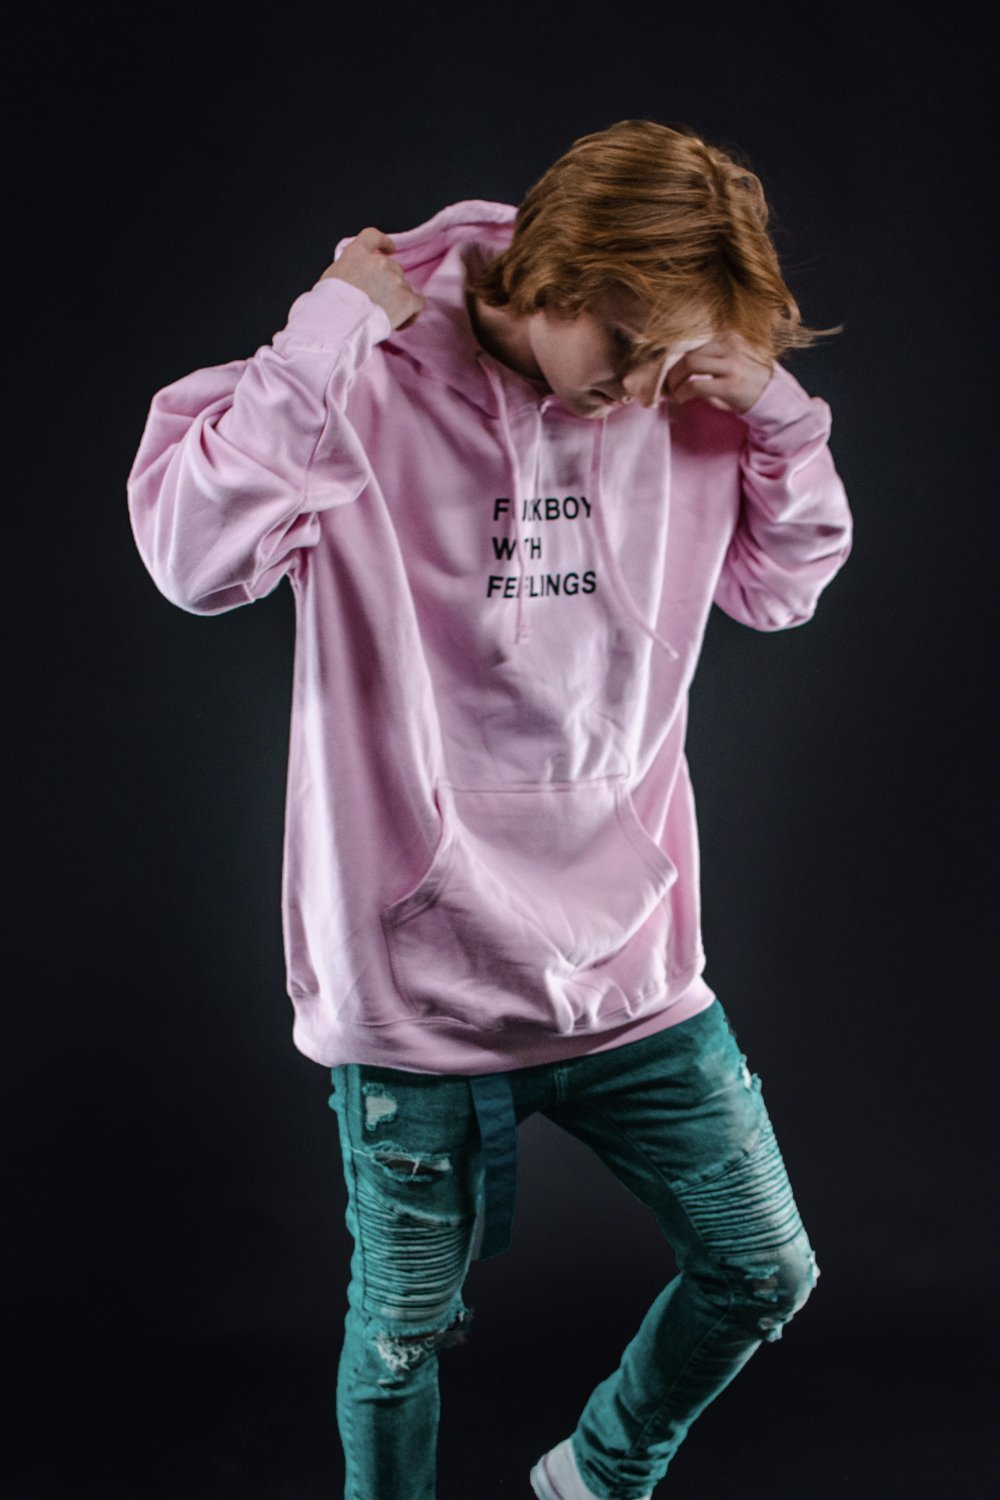 Fuckboy With Feelings Hoodie